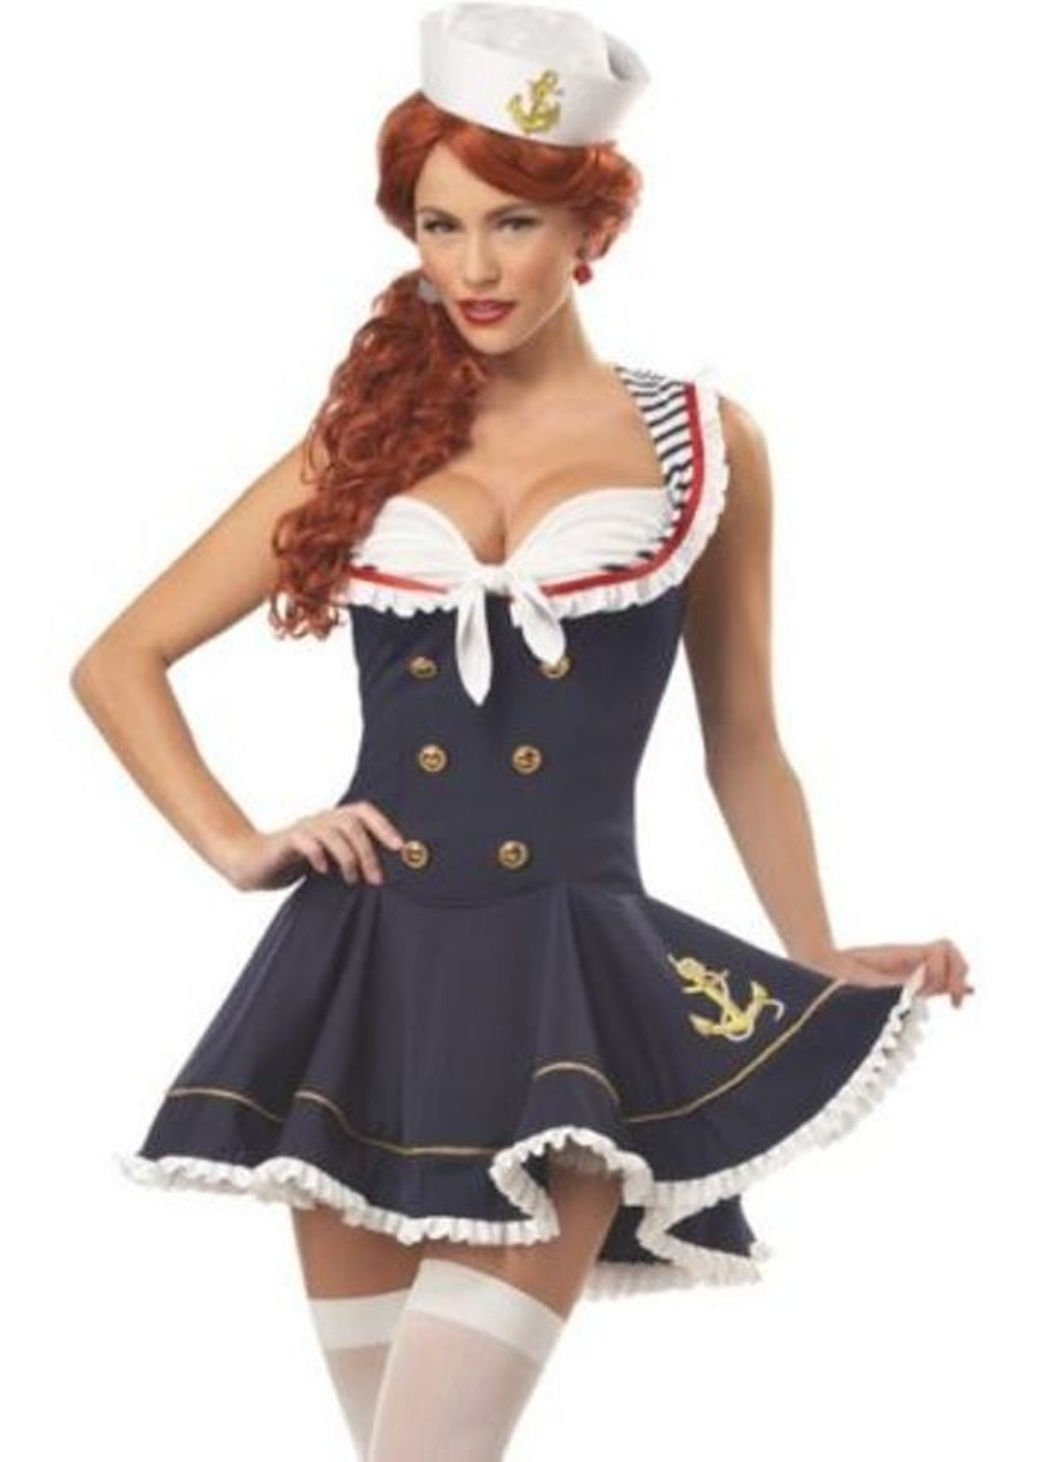 Ladie's Sassy Sailor Girl Costume Adult Navy Fancy Dress Womens Nautical Outfit